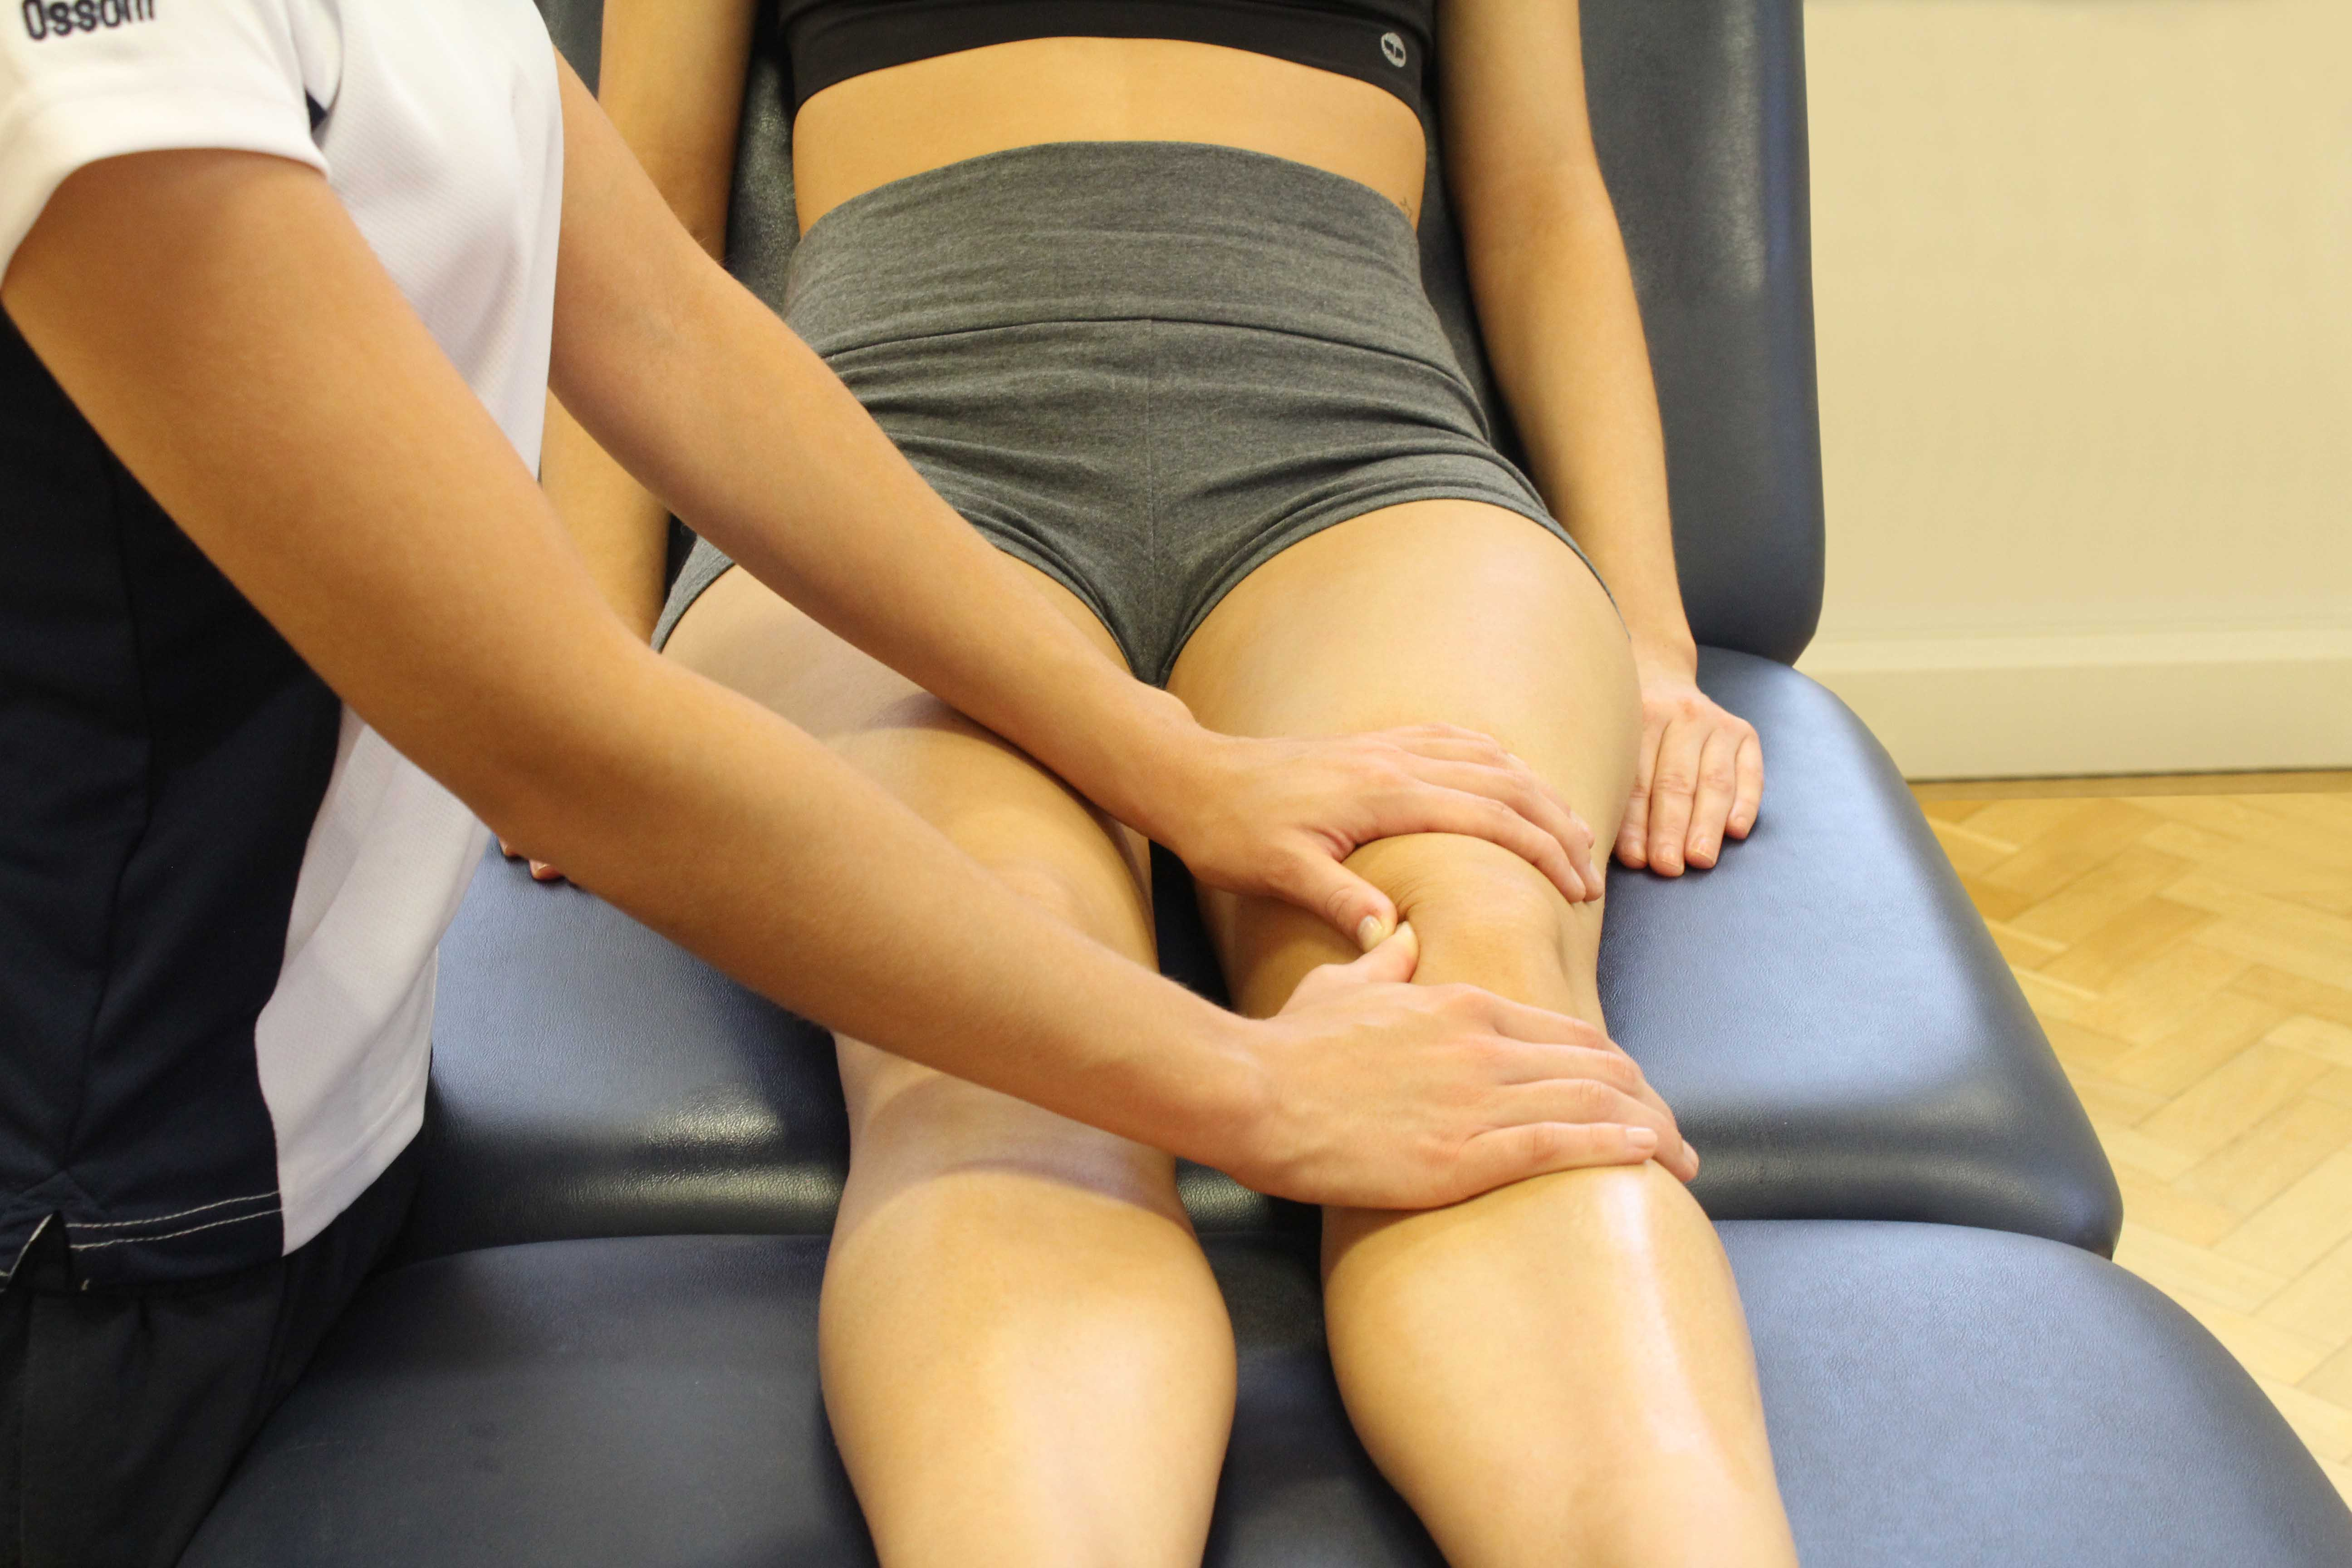 mobilisations applied to patella